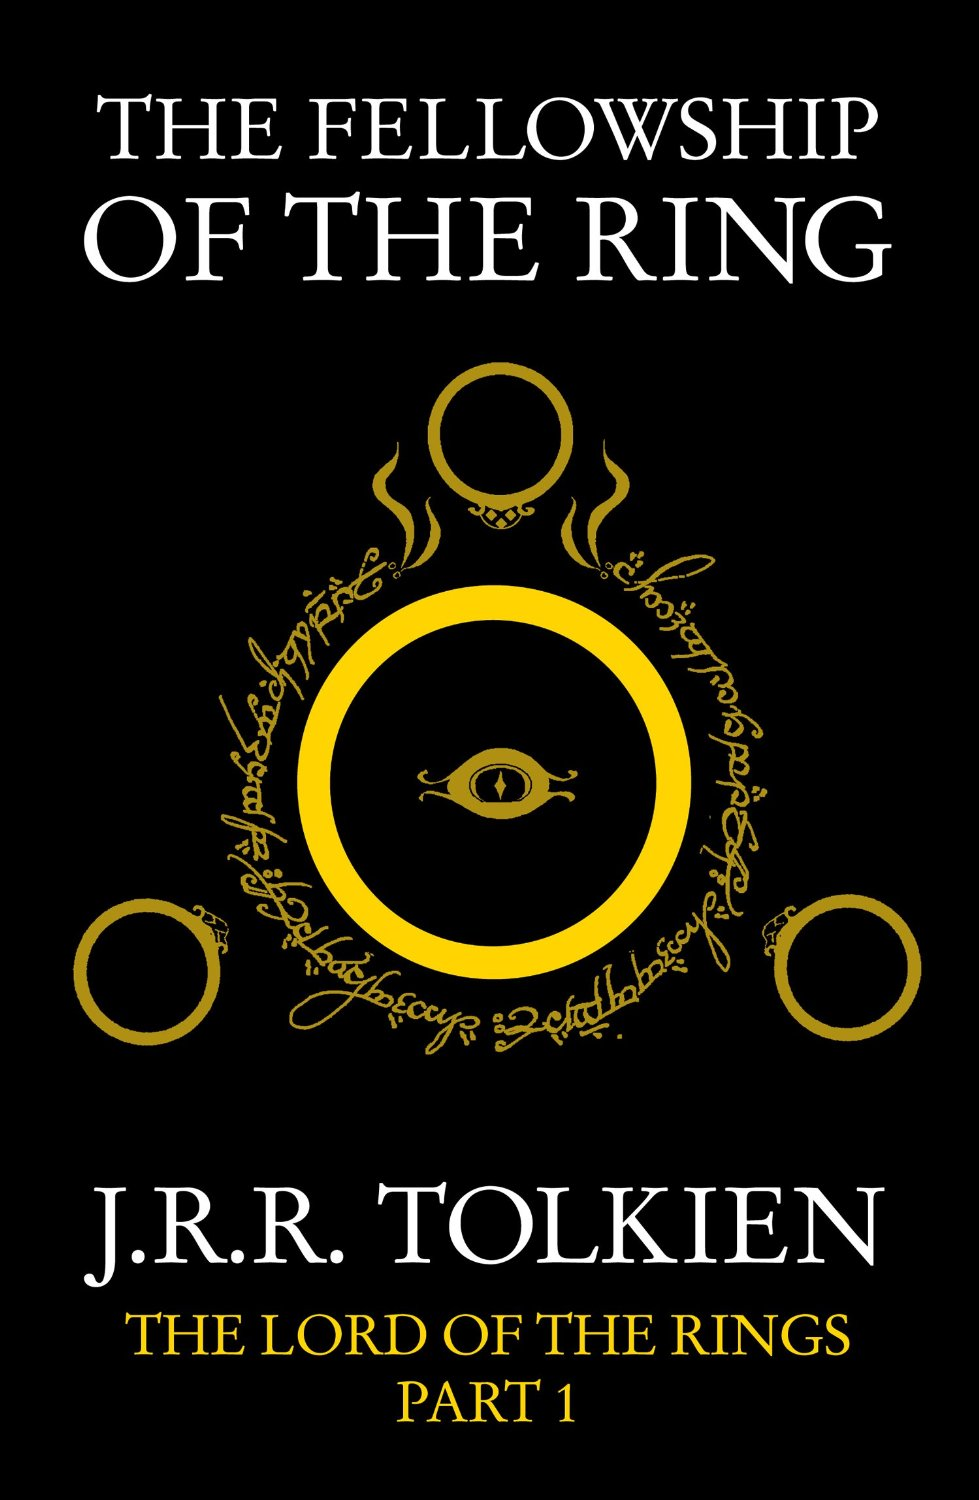 The Fellowship of the Ring: (Lord of the Rings, 1) by J. R. R. Tolkien - eBook, ePub, Mobi, PDF (Fast instant delivery)